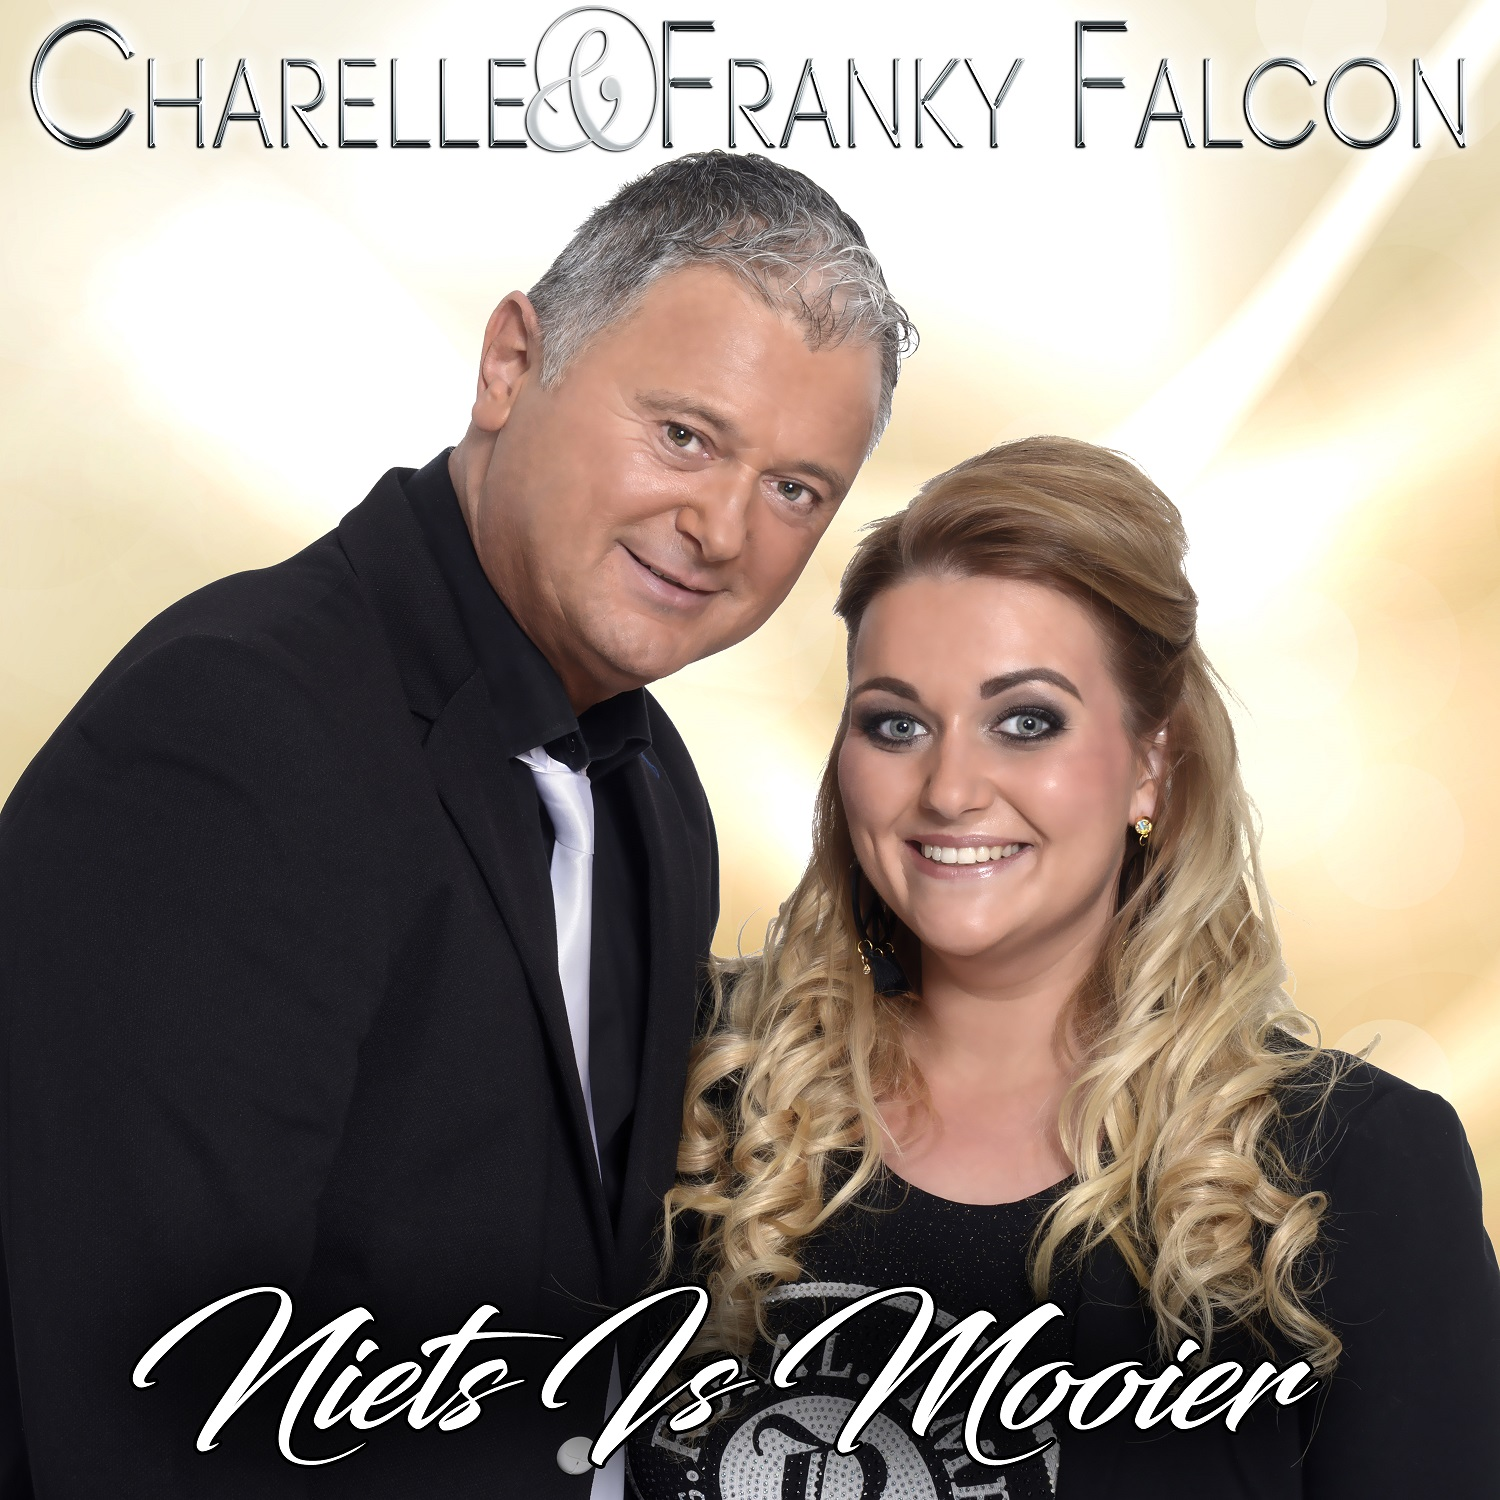 Charelle & Franky Falcon - Niets Is Mooier